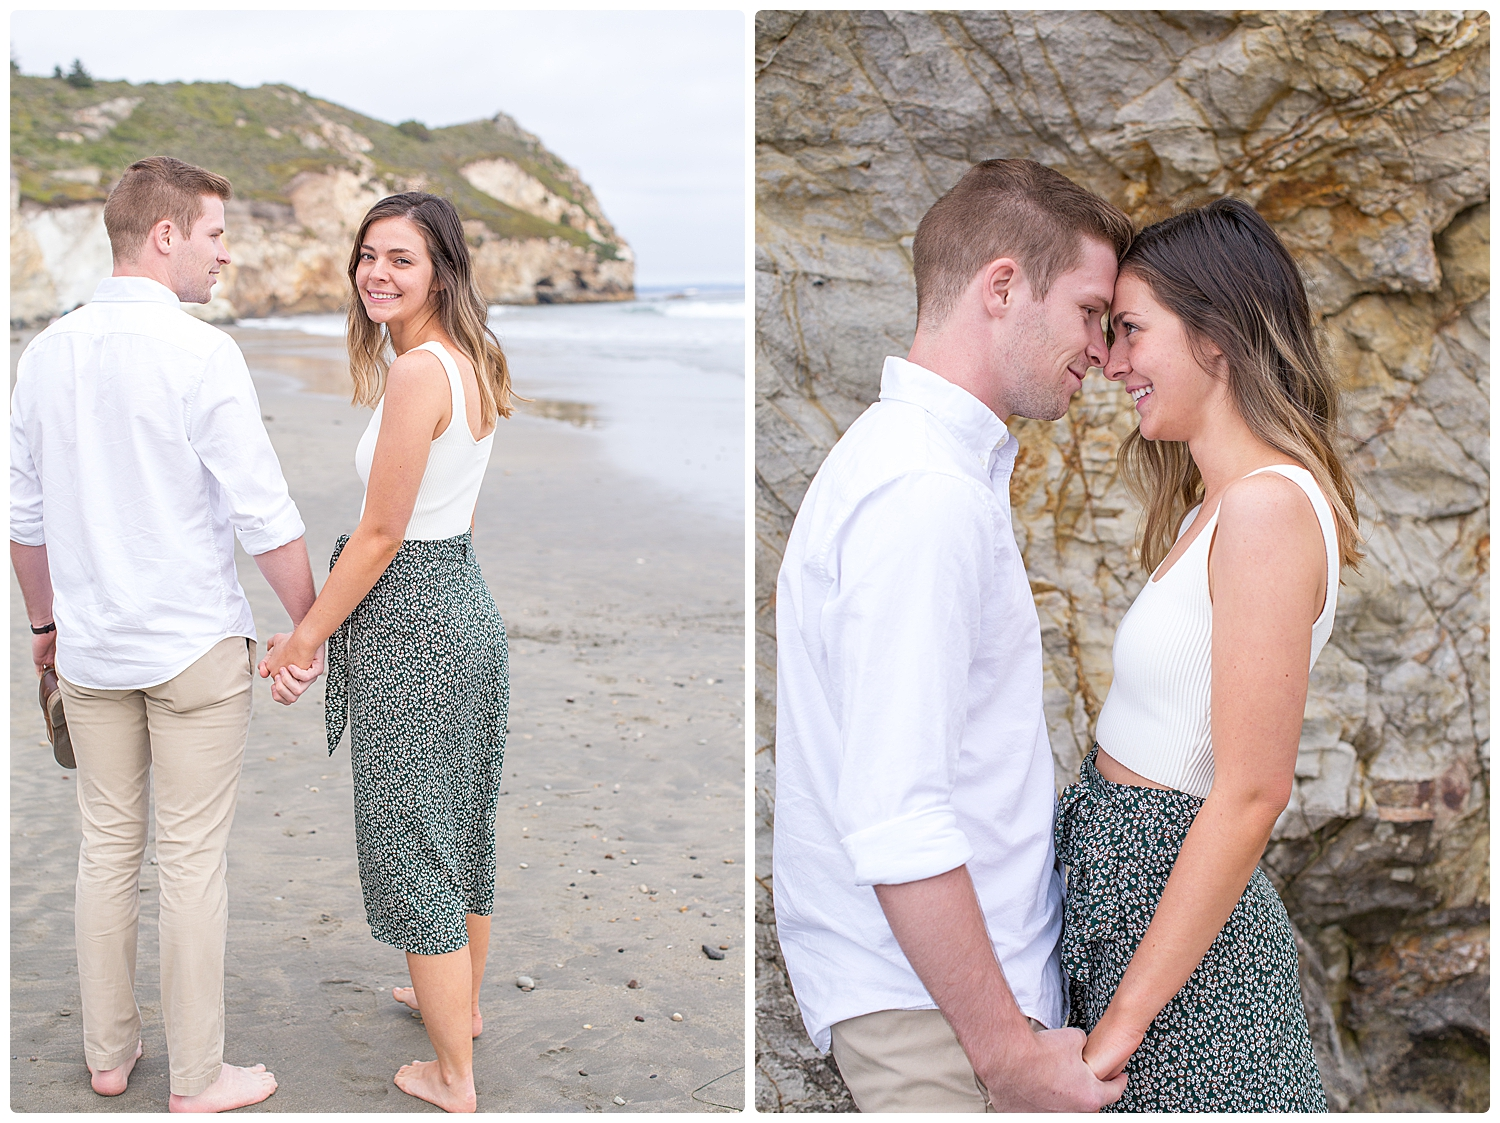 061919_EthanEmma_proposal_Renoda Campbell Photography-7003.jpg